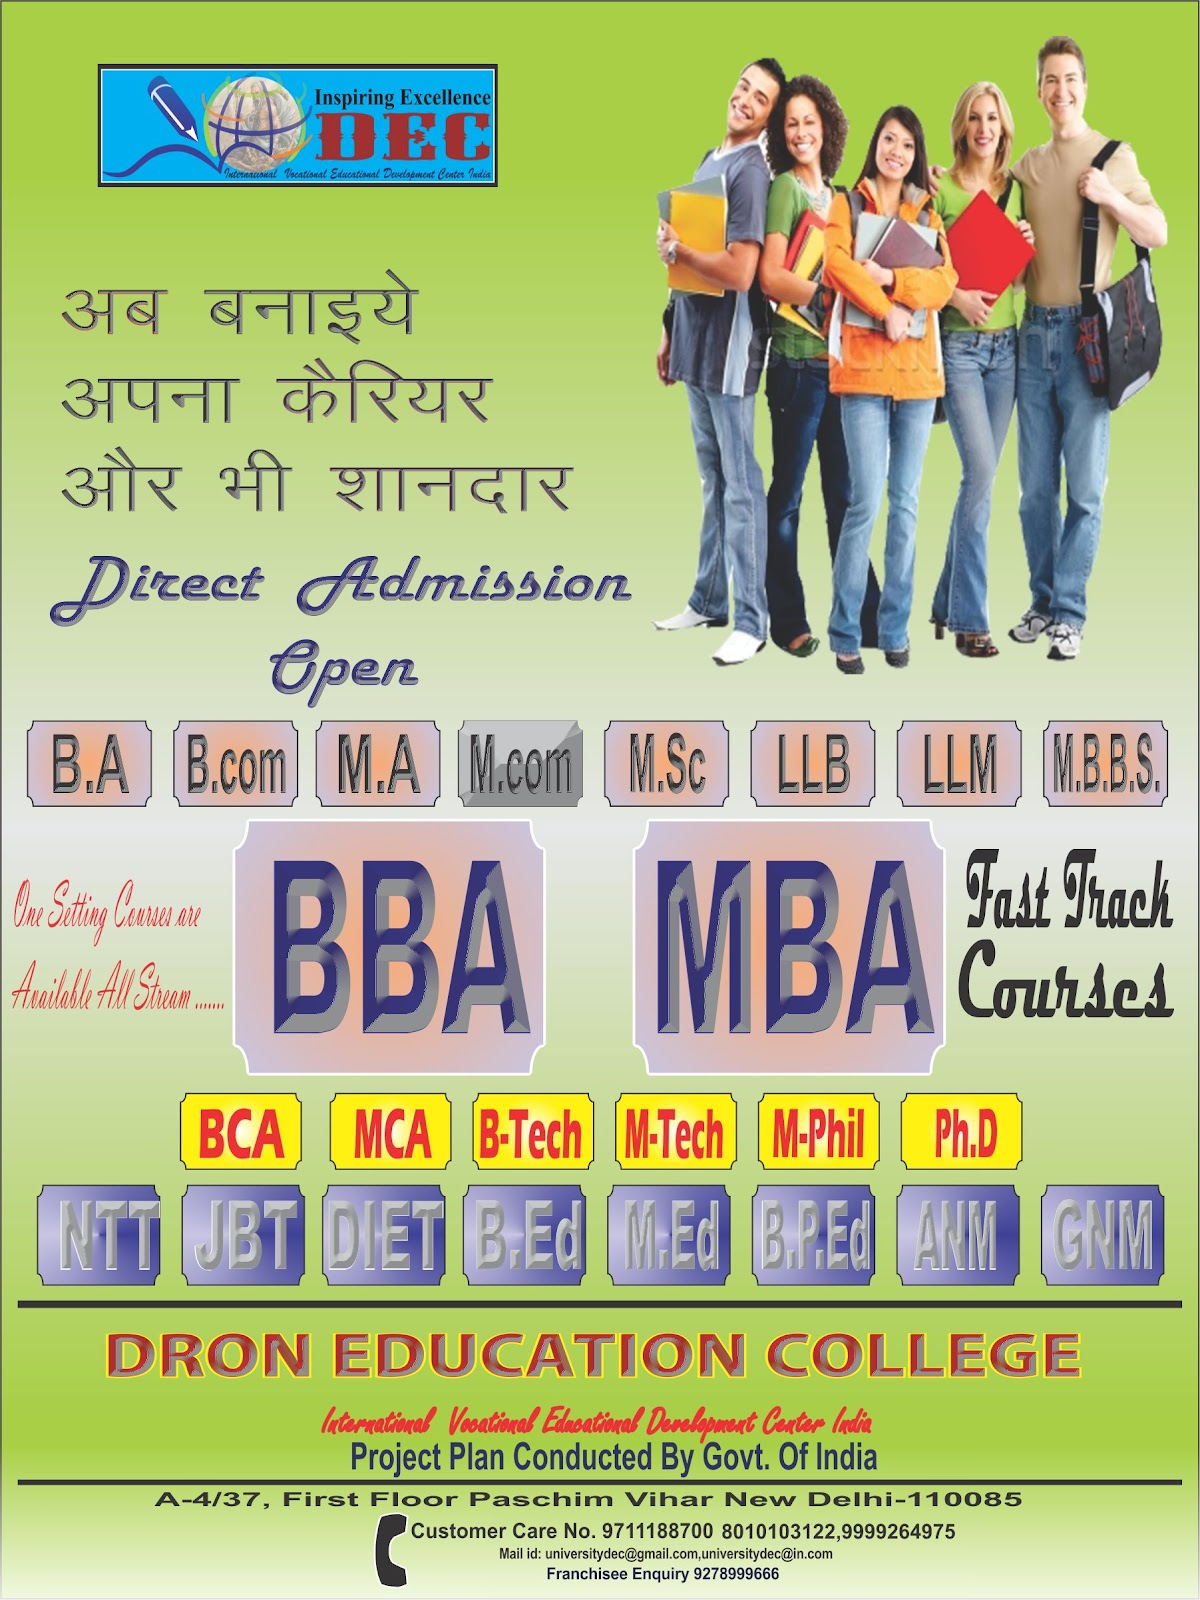 Only 1 year degree course are avilable jbtnpttbedllbjbtdiet university board approved by ugc ncte govt of india below 50 can also apply 100 valid for govt teacher jobs in all over indiaeeting for the day kristyandbryce Images